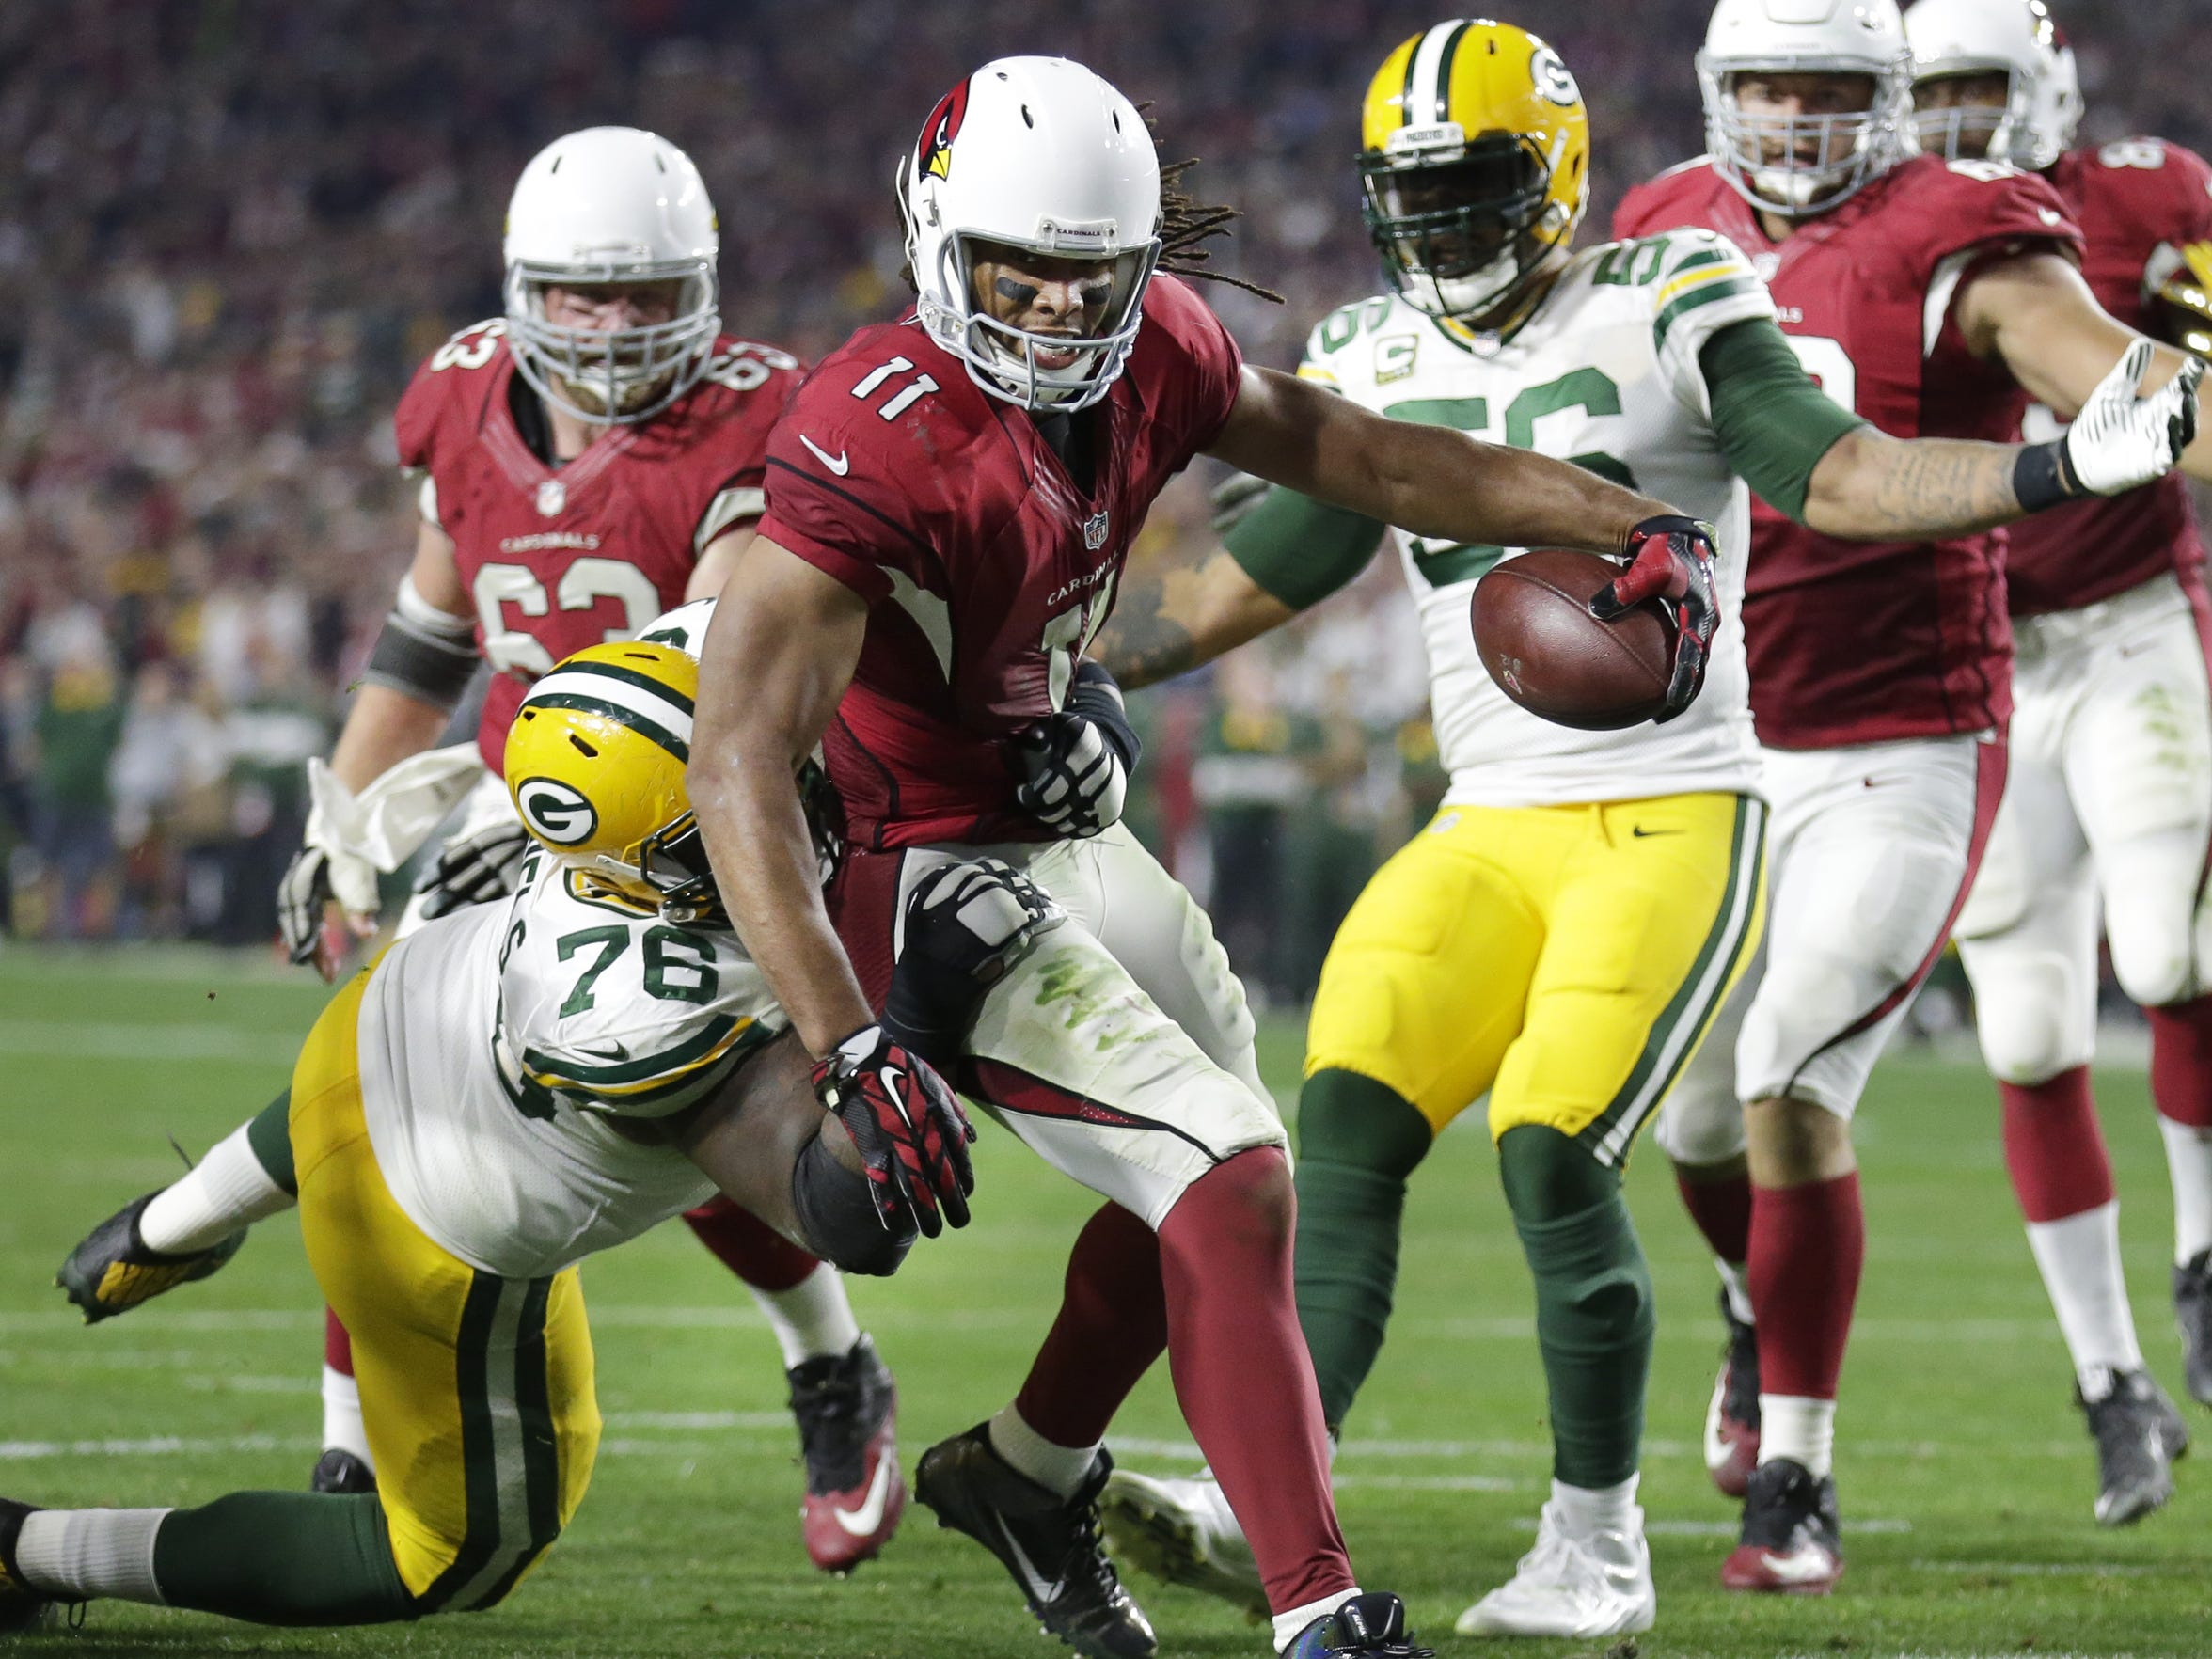 Arizona Cardinals receiver Larry Fitzgerald scores a touchdown in over time to defeat the Packers 26-20.